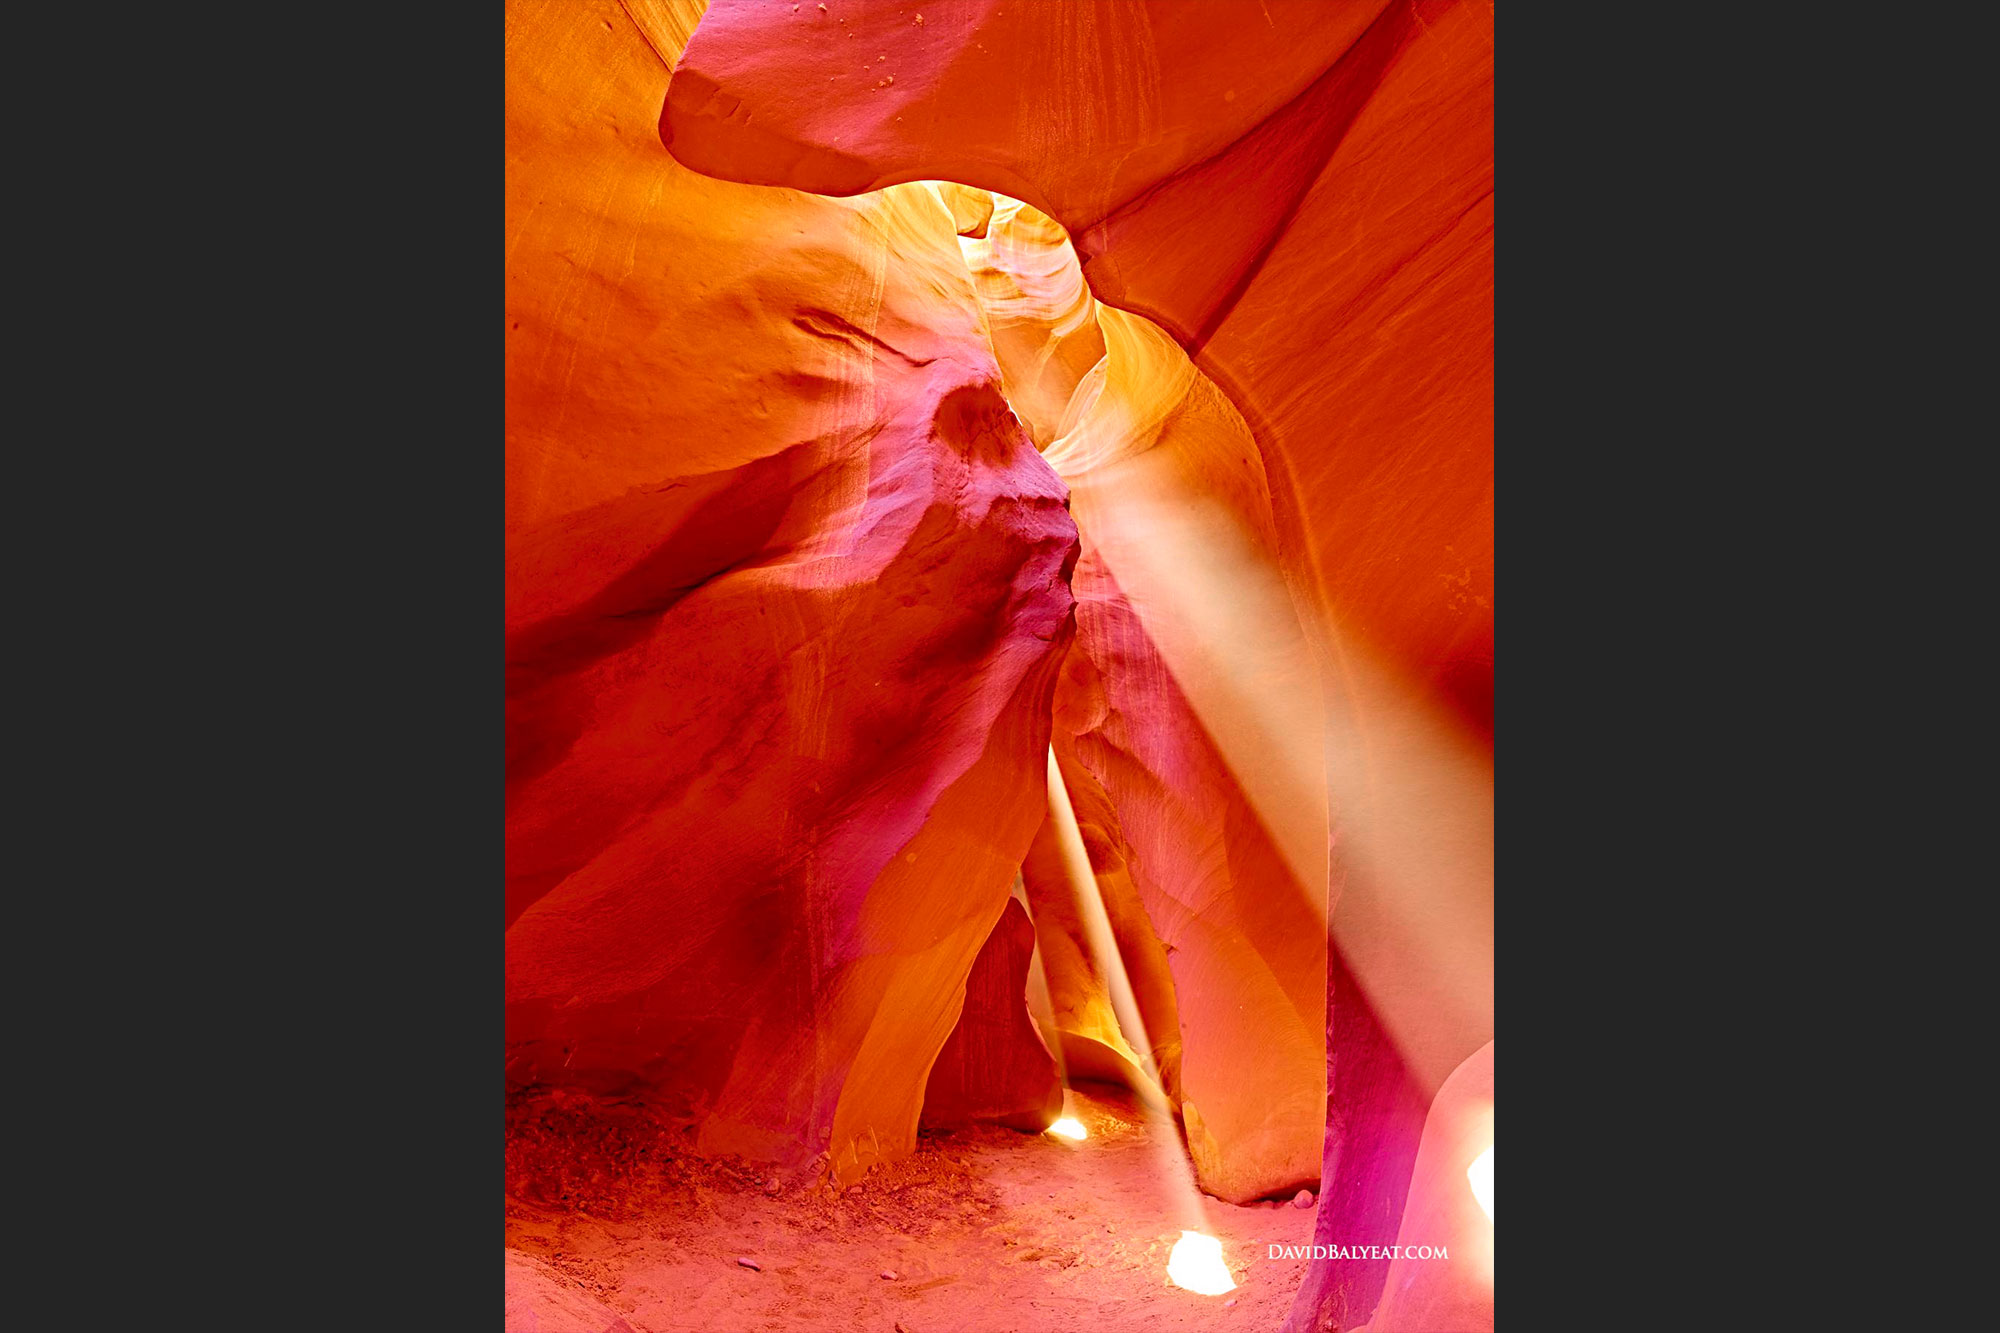 Antelope Canyon Arizona Navajo Warrior in profile high definition HD professional photography